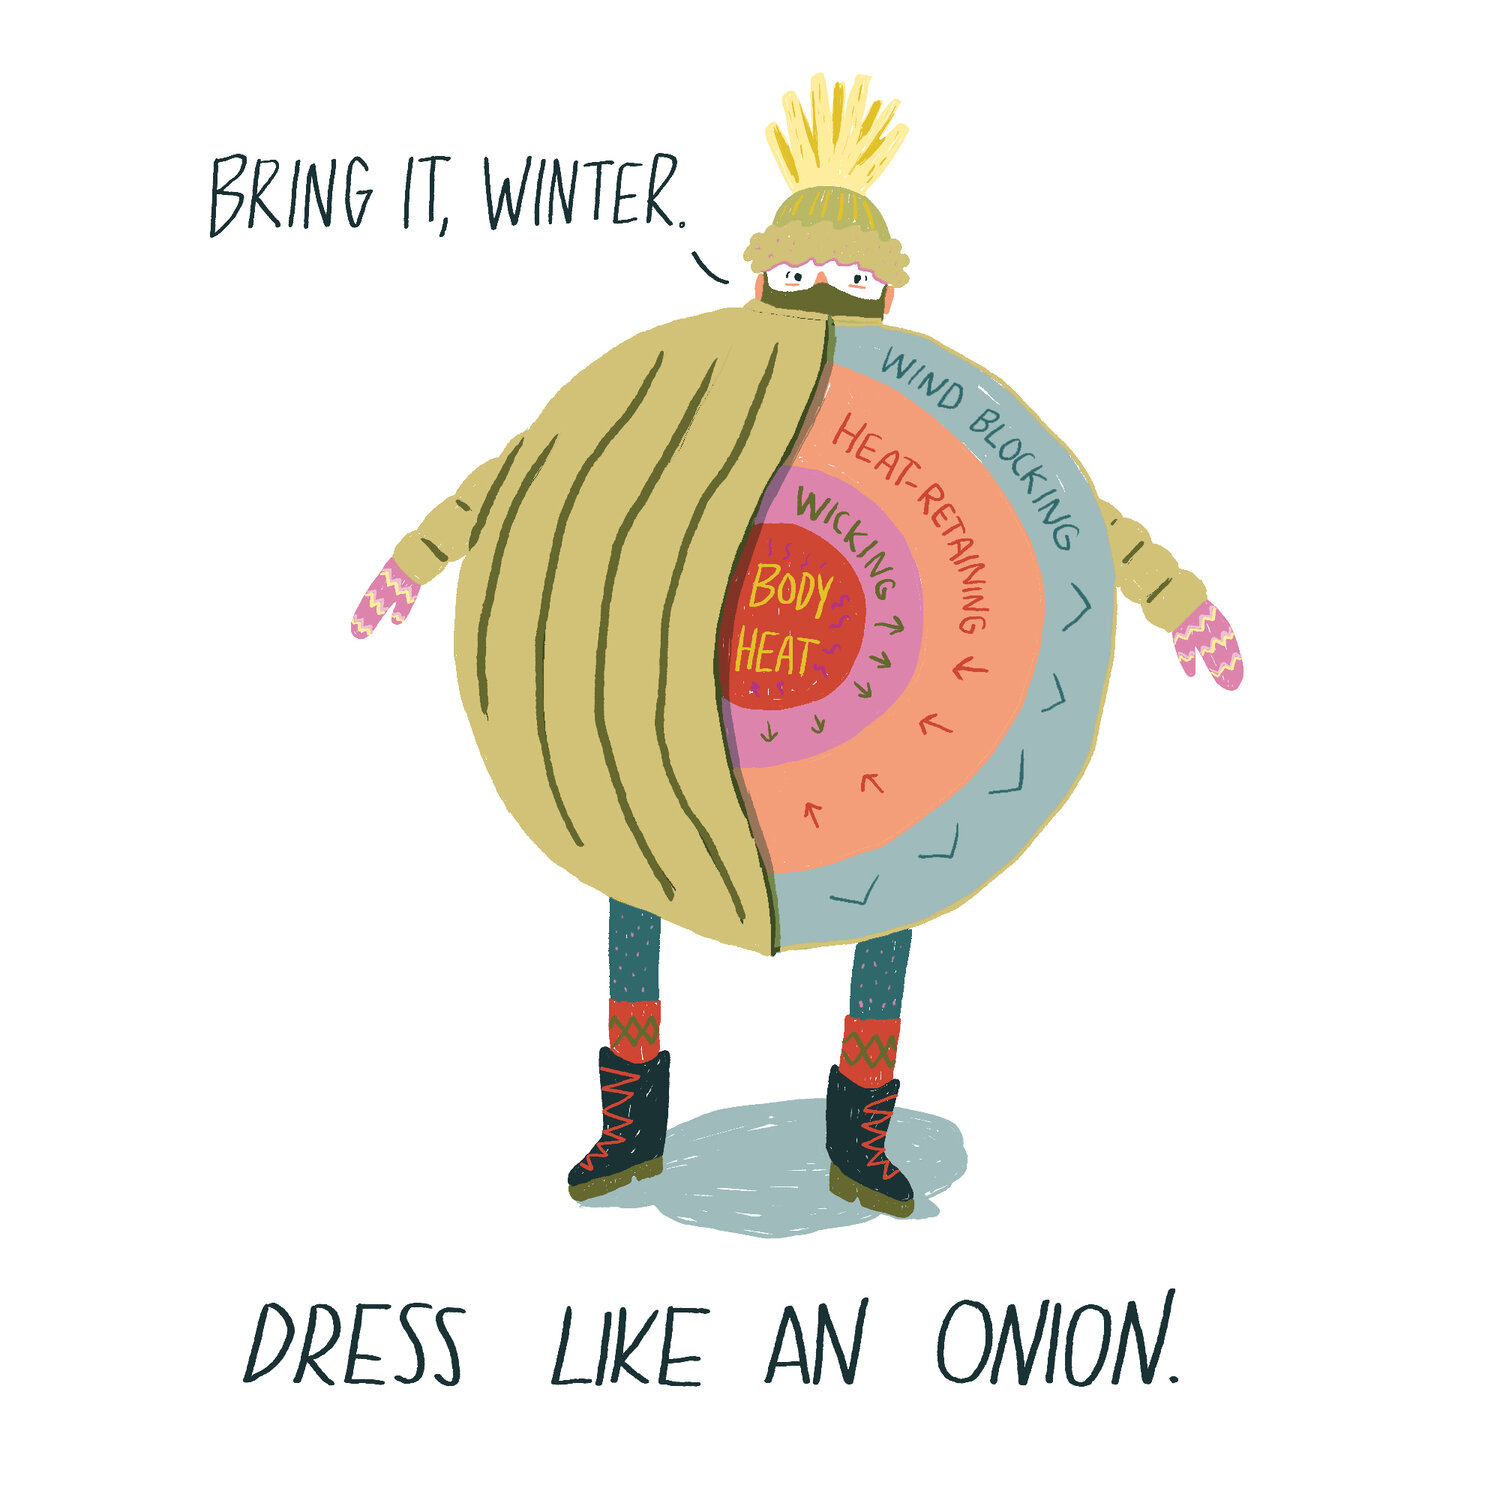 Dress like an onion: start with a sweat- wicking layer on the inside, then one to trap heat, and finish with one to block wind.